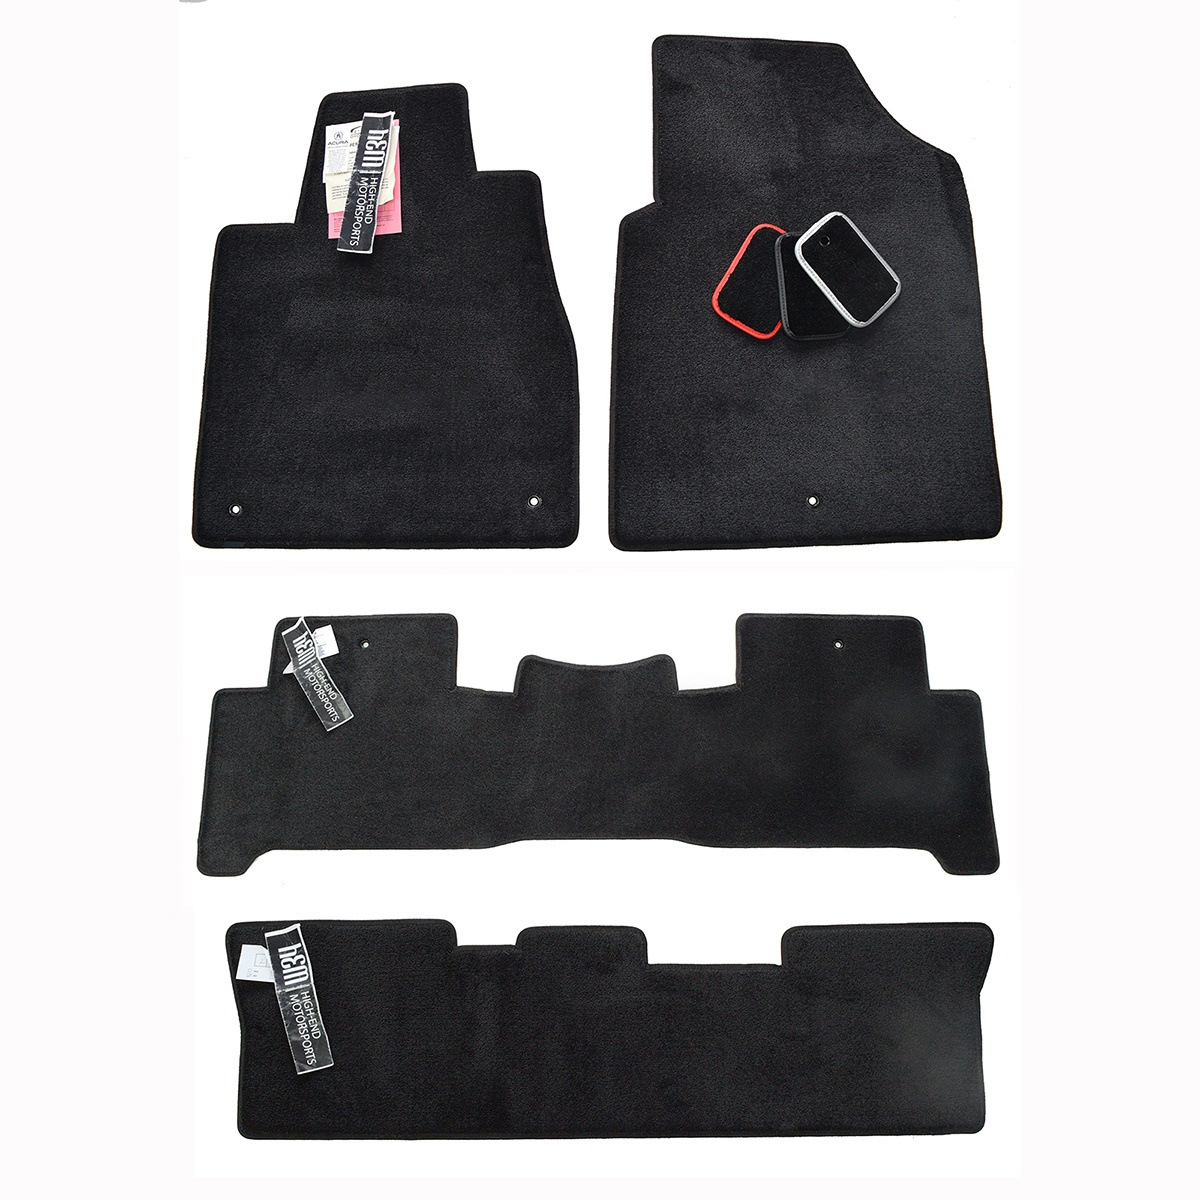 in infiniti from mats for accessories styling liners automobiles zhaoyanhua floor item carpet fx car